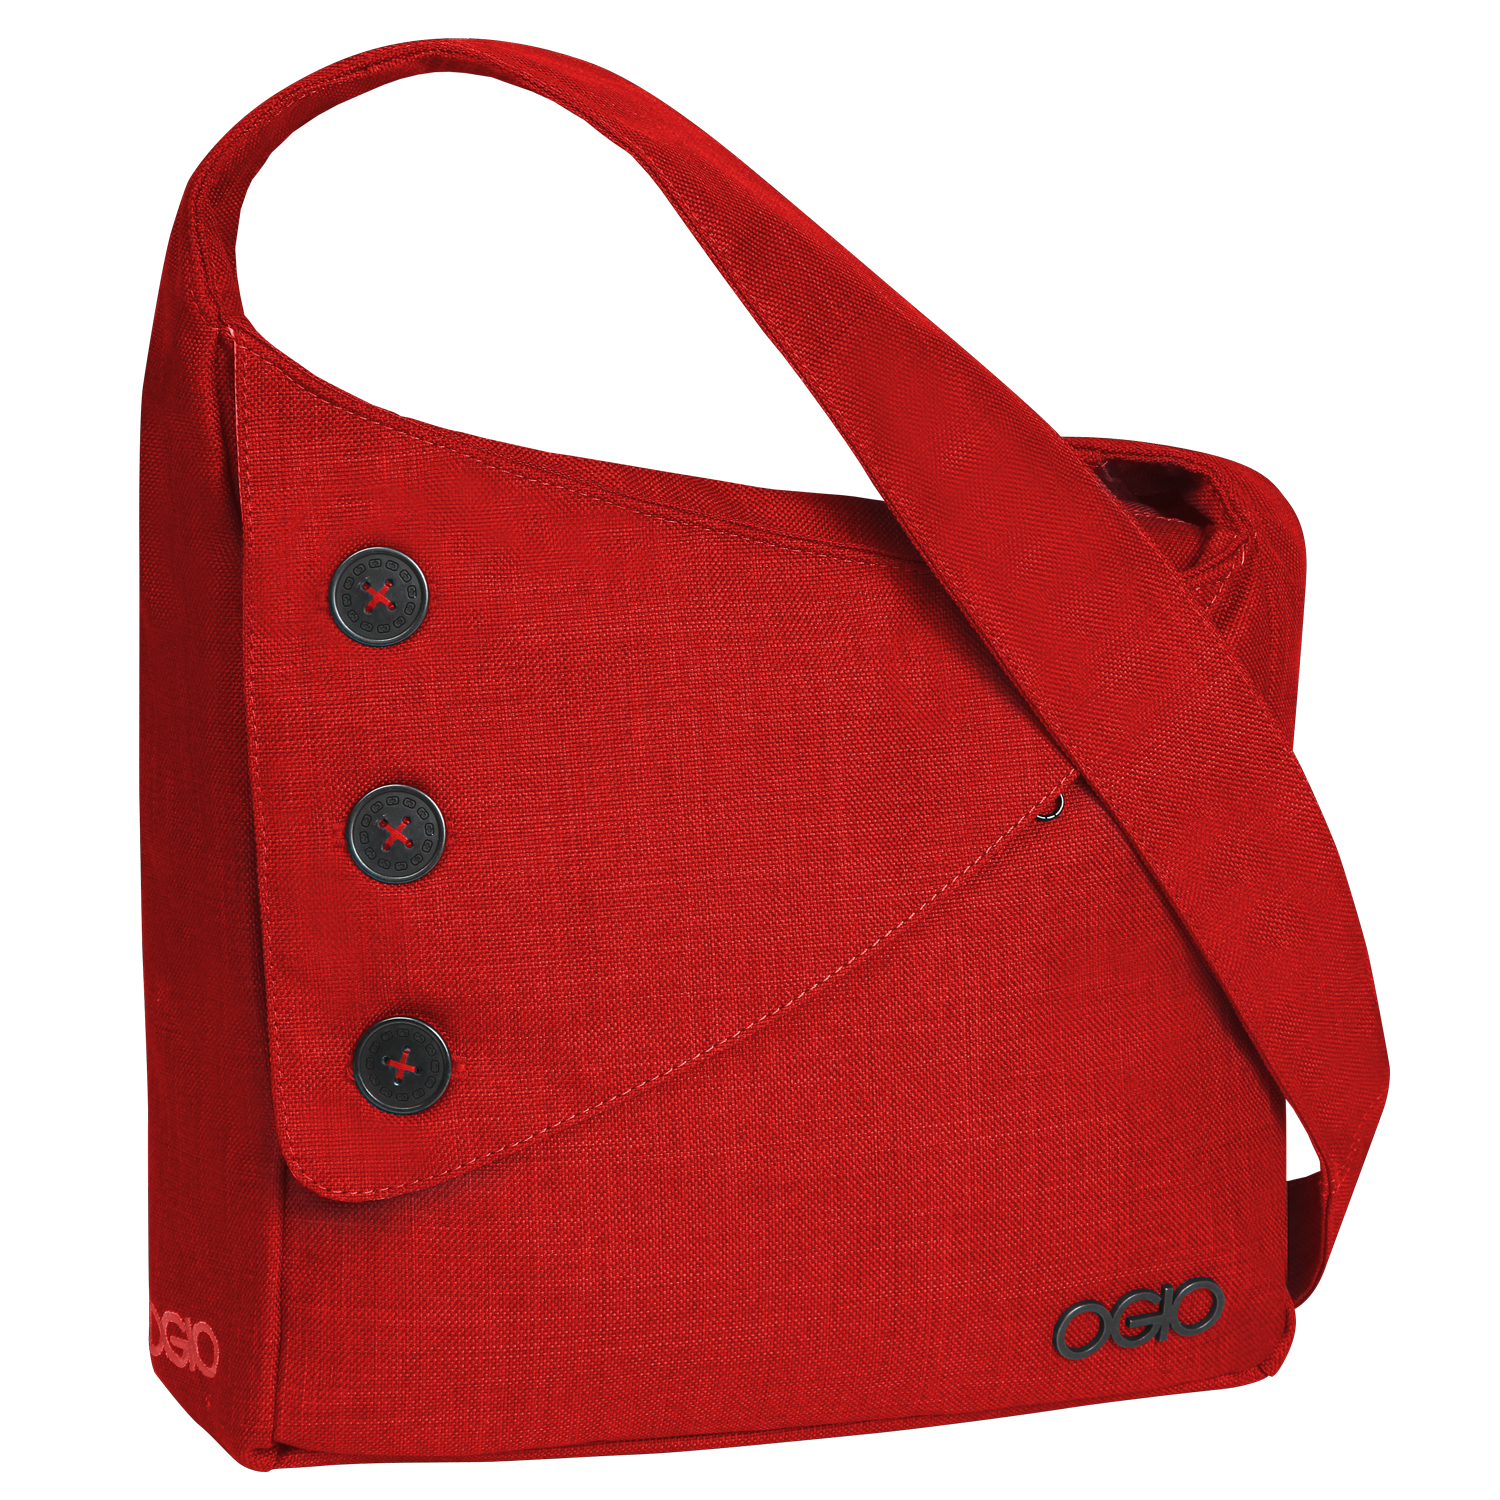 Red women bag PNG image